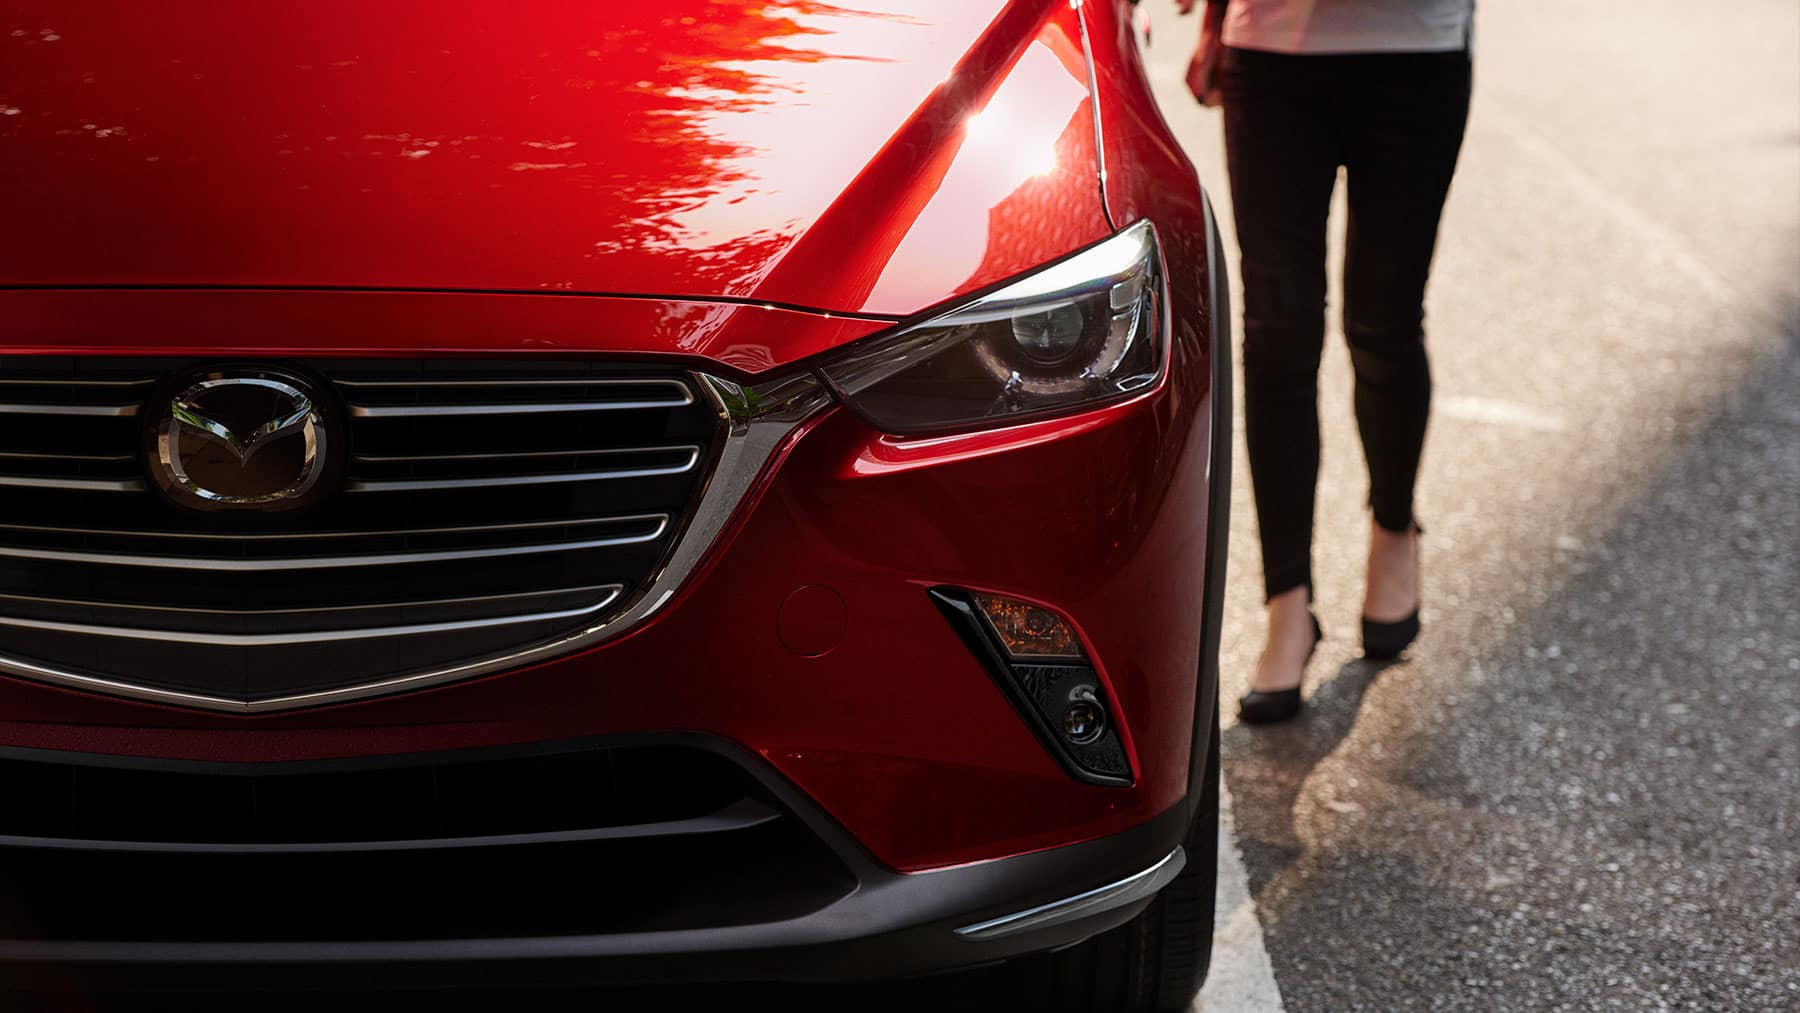 2019 Mazda CX-3 for sale in Fredericksburg VA